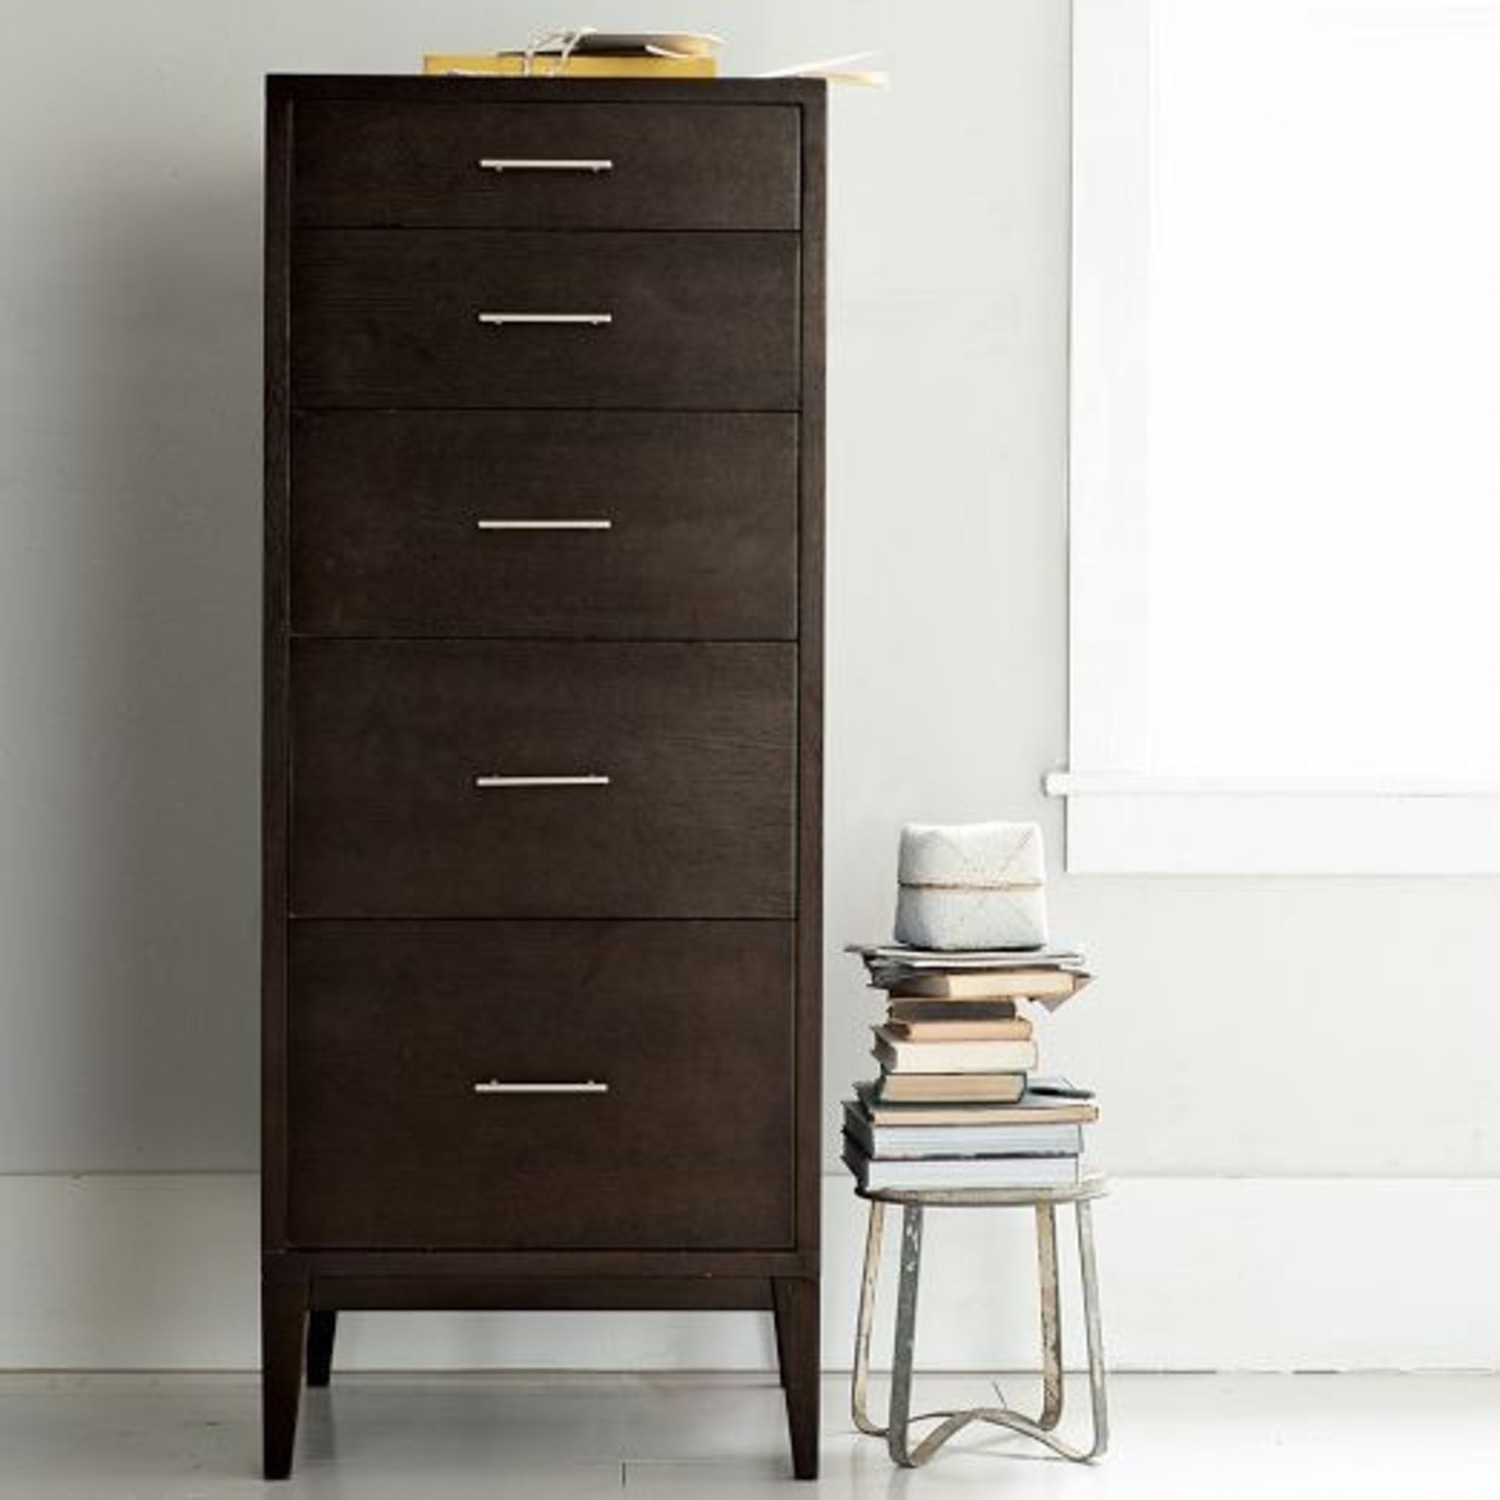 West Elm Narrow Leg Tall Dresser - image-8